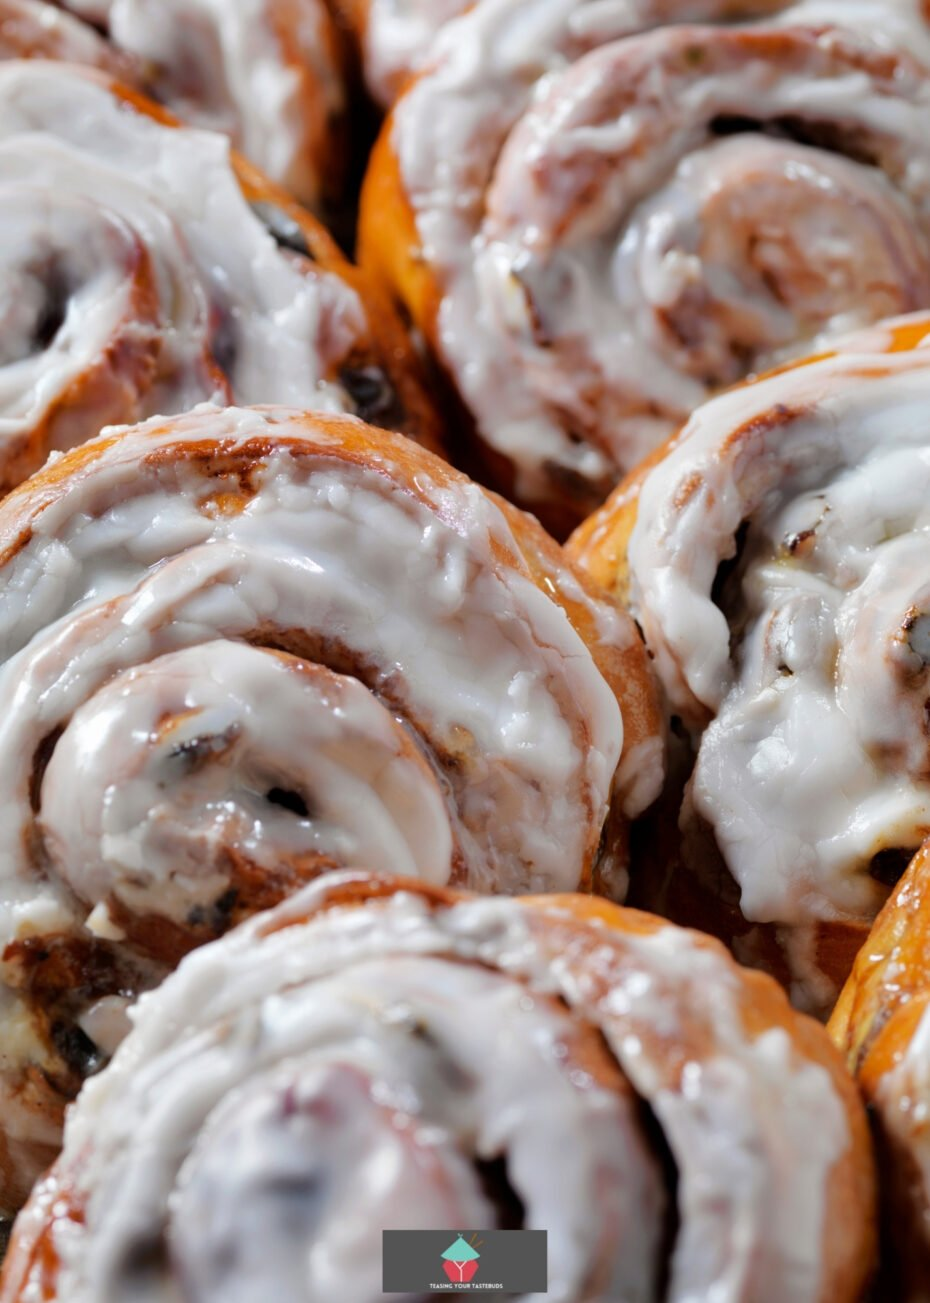 Pecan Maple Syrup Cinnamon Rolls. These are so yummy! Soft, sticky bread buns loaded with pecans and delicious Maple Syrup. Great served warm from the oven!